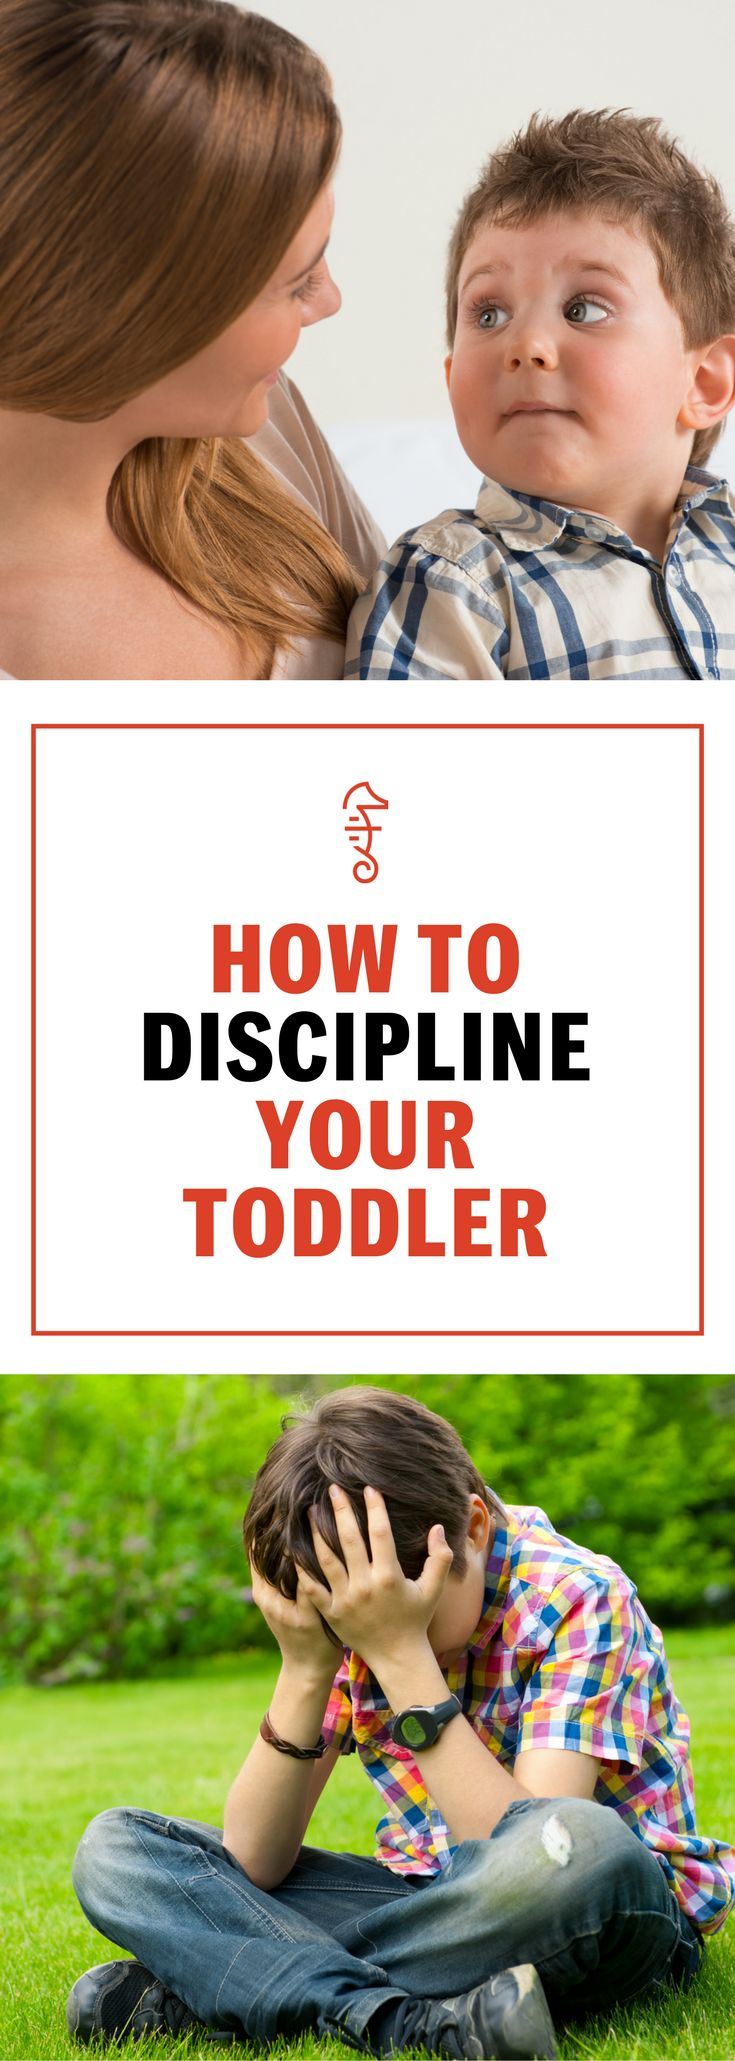 disciplining toddlers, disciplining toddlers baby, disciplining toddlers who hit, misbehaving toddler